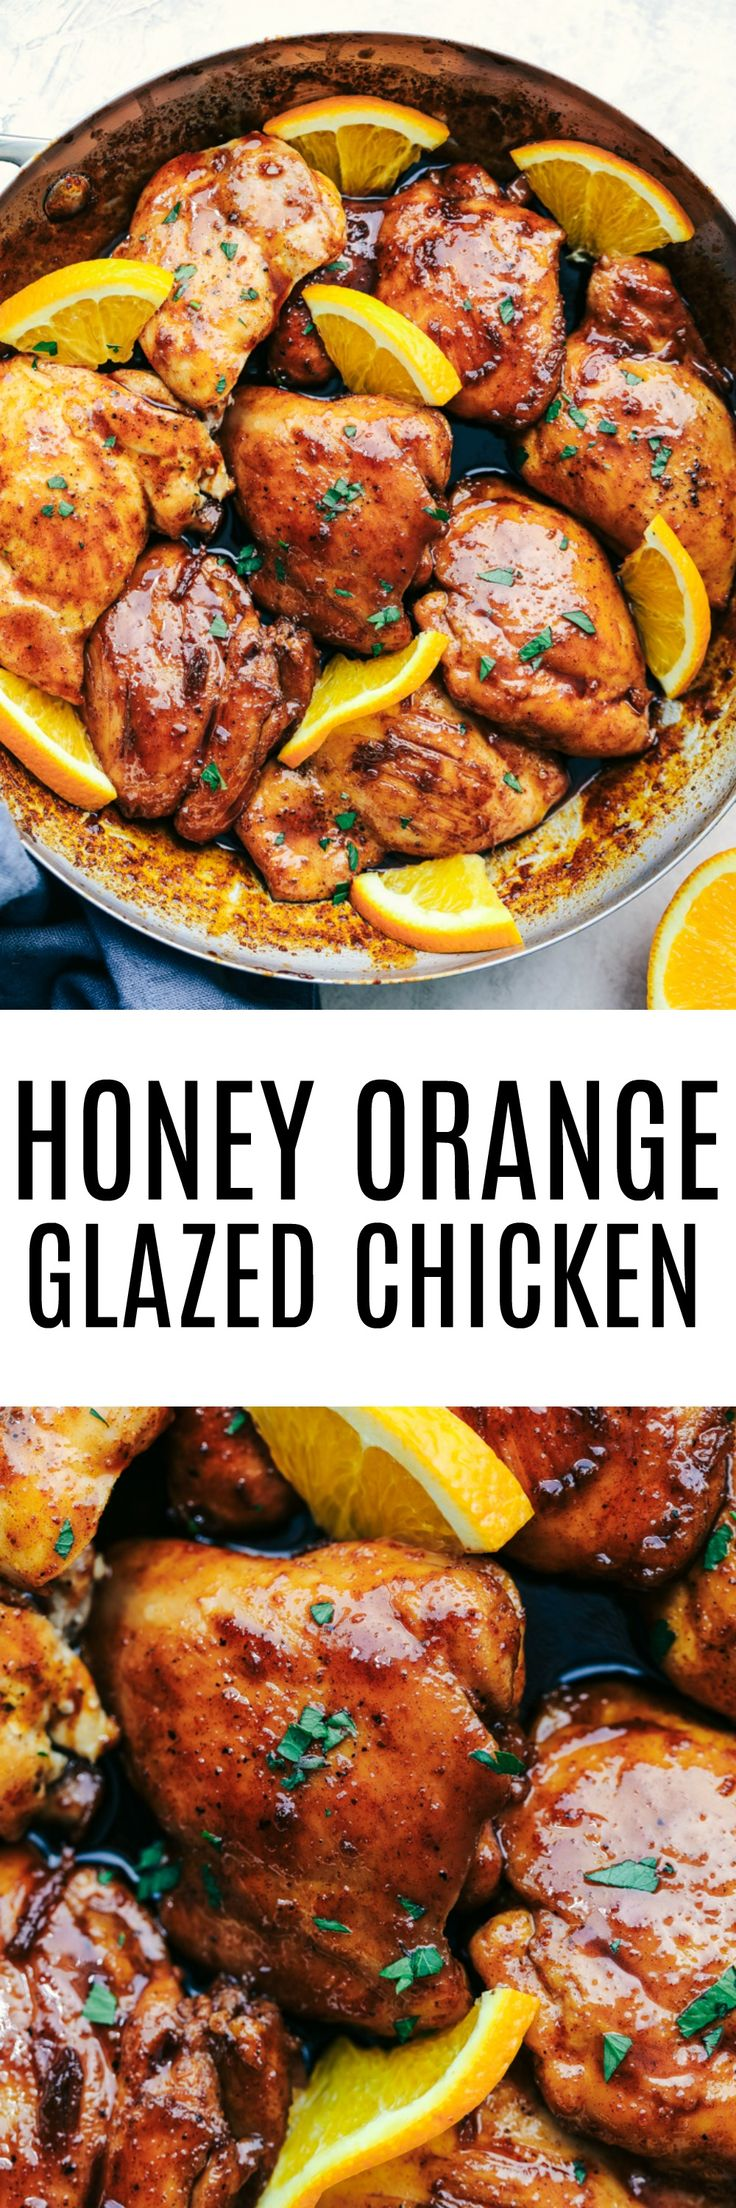 Honey Orange Glazed Chicken combines delicious spices and a sweet and tangy honey orange glaze.  This makes the perfect meal for your family and has amazing flavor!